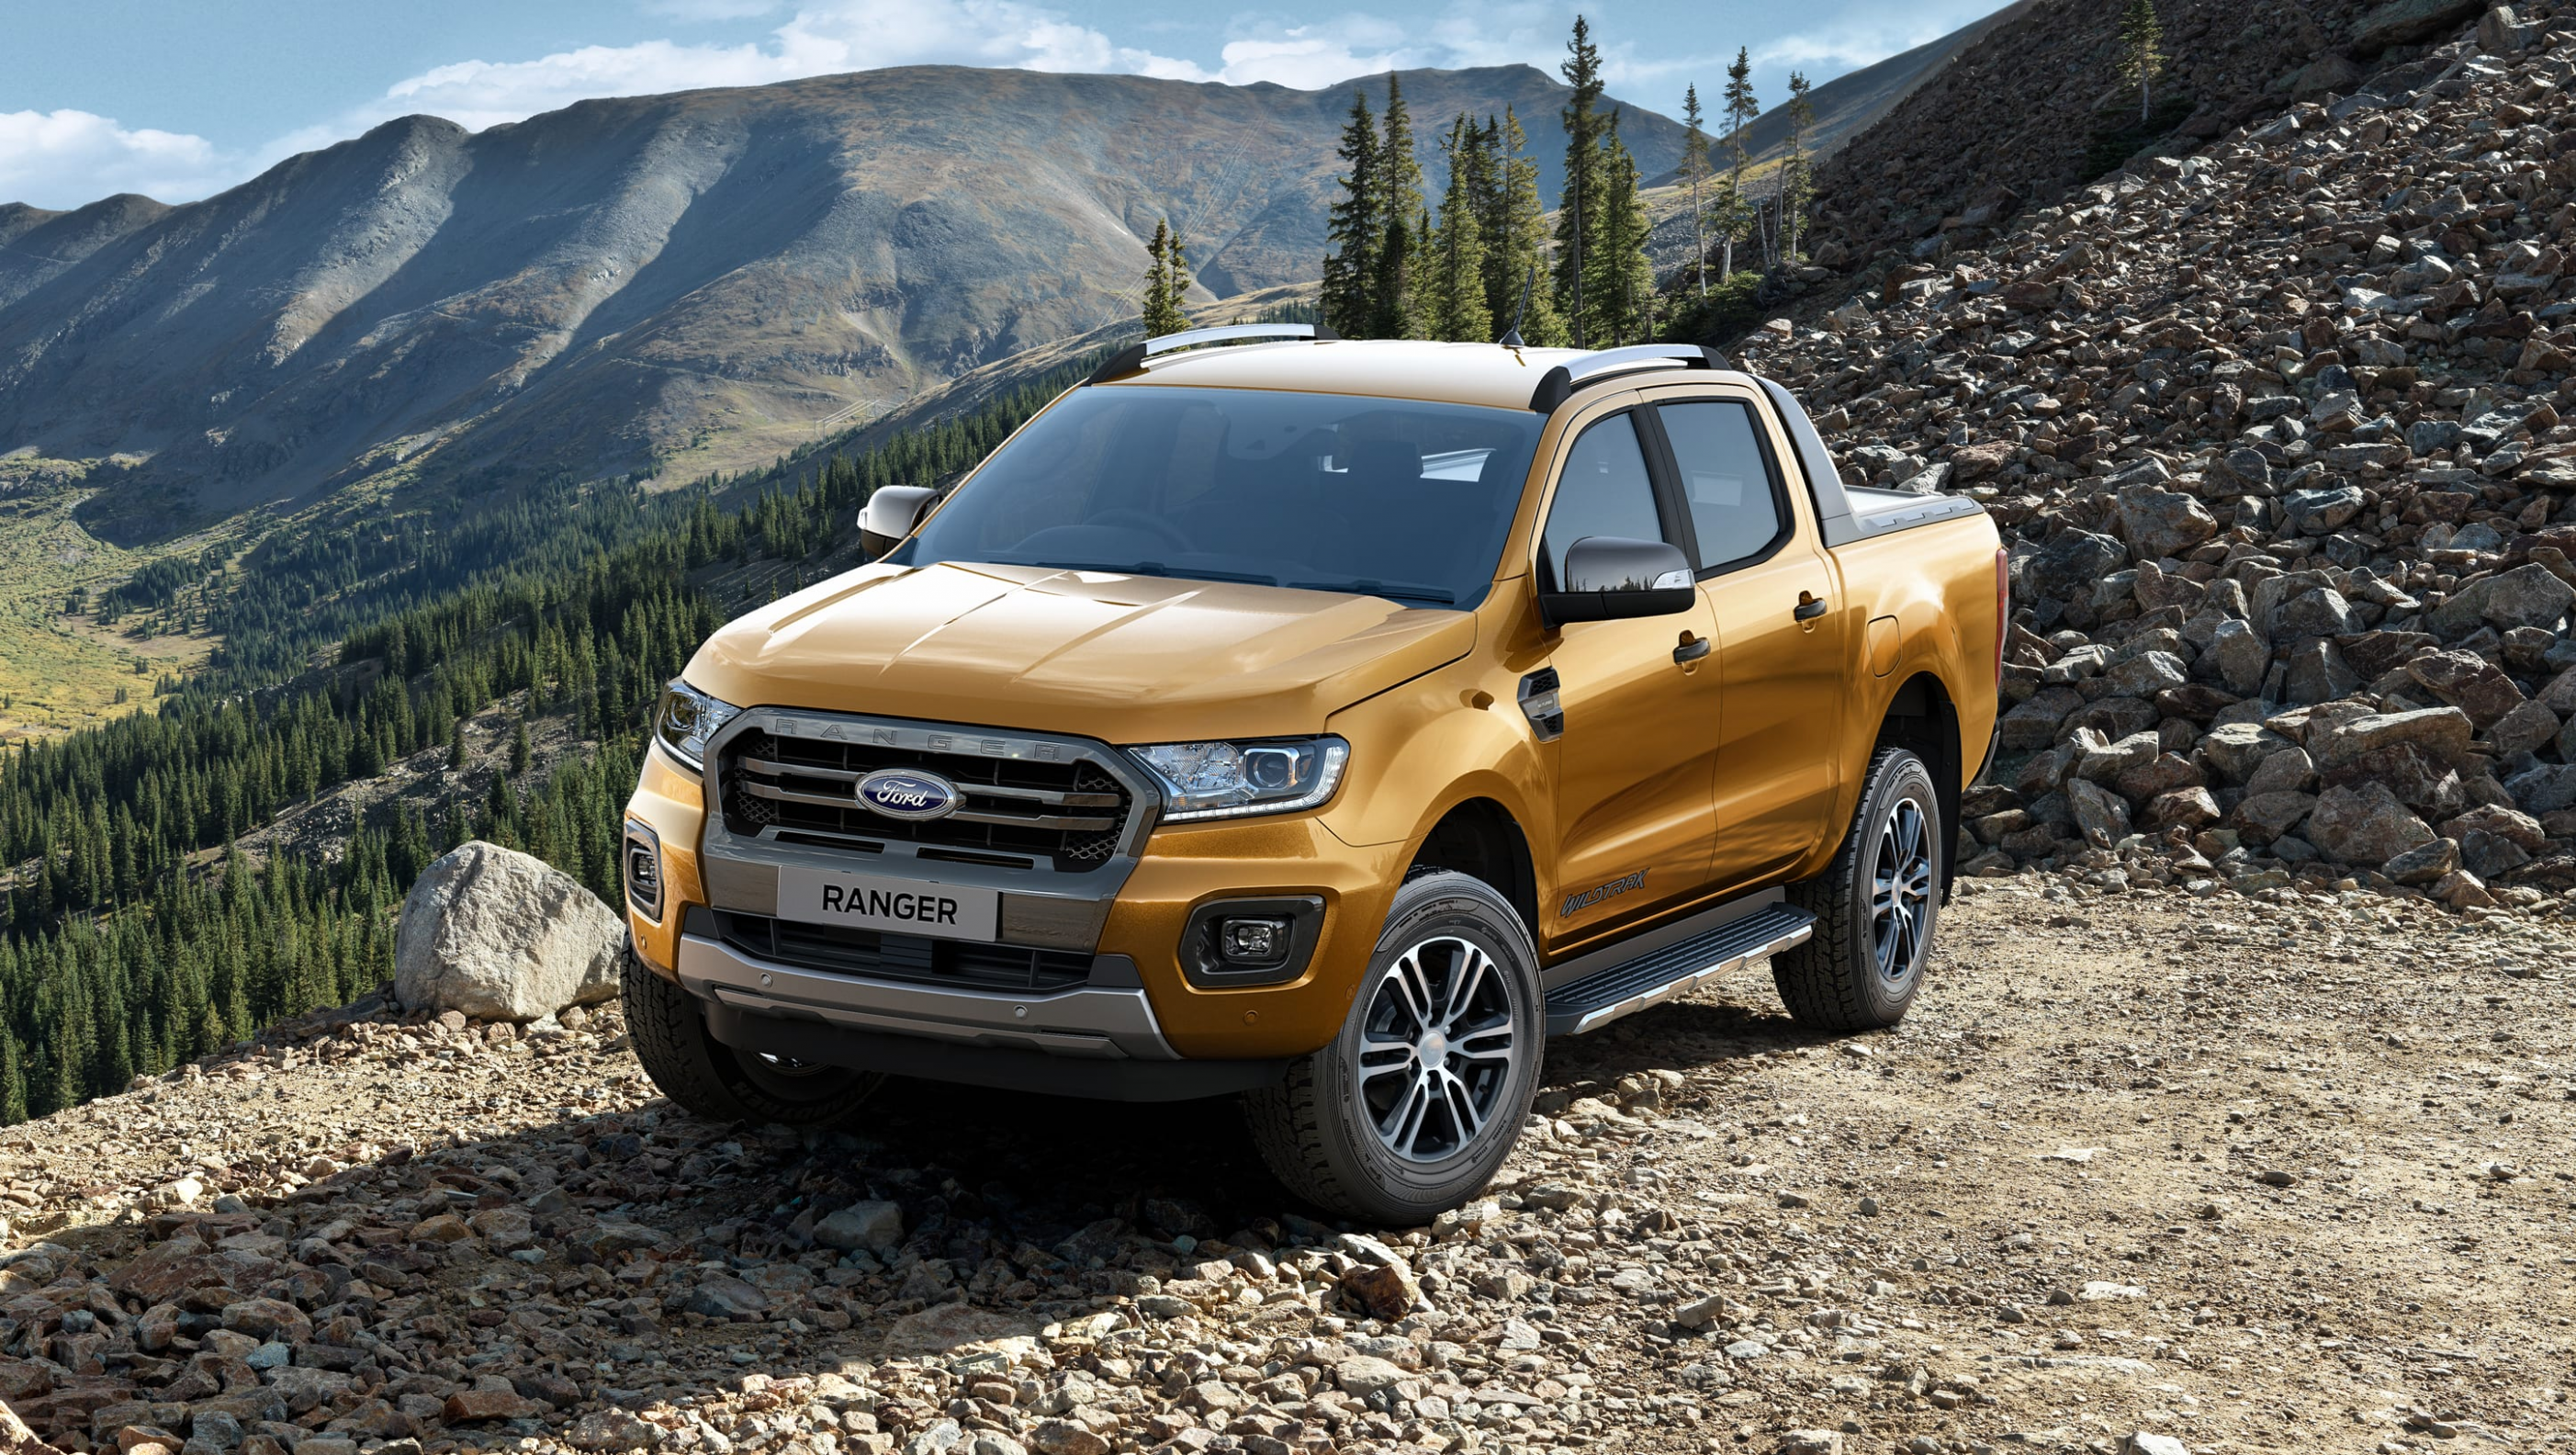 Ford Ranger 6 pricing and spec confirmed: Key changes for HiLux ..